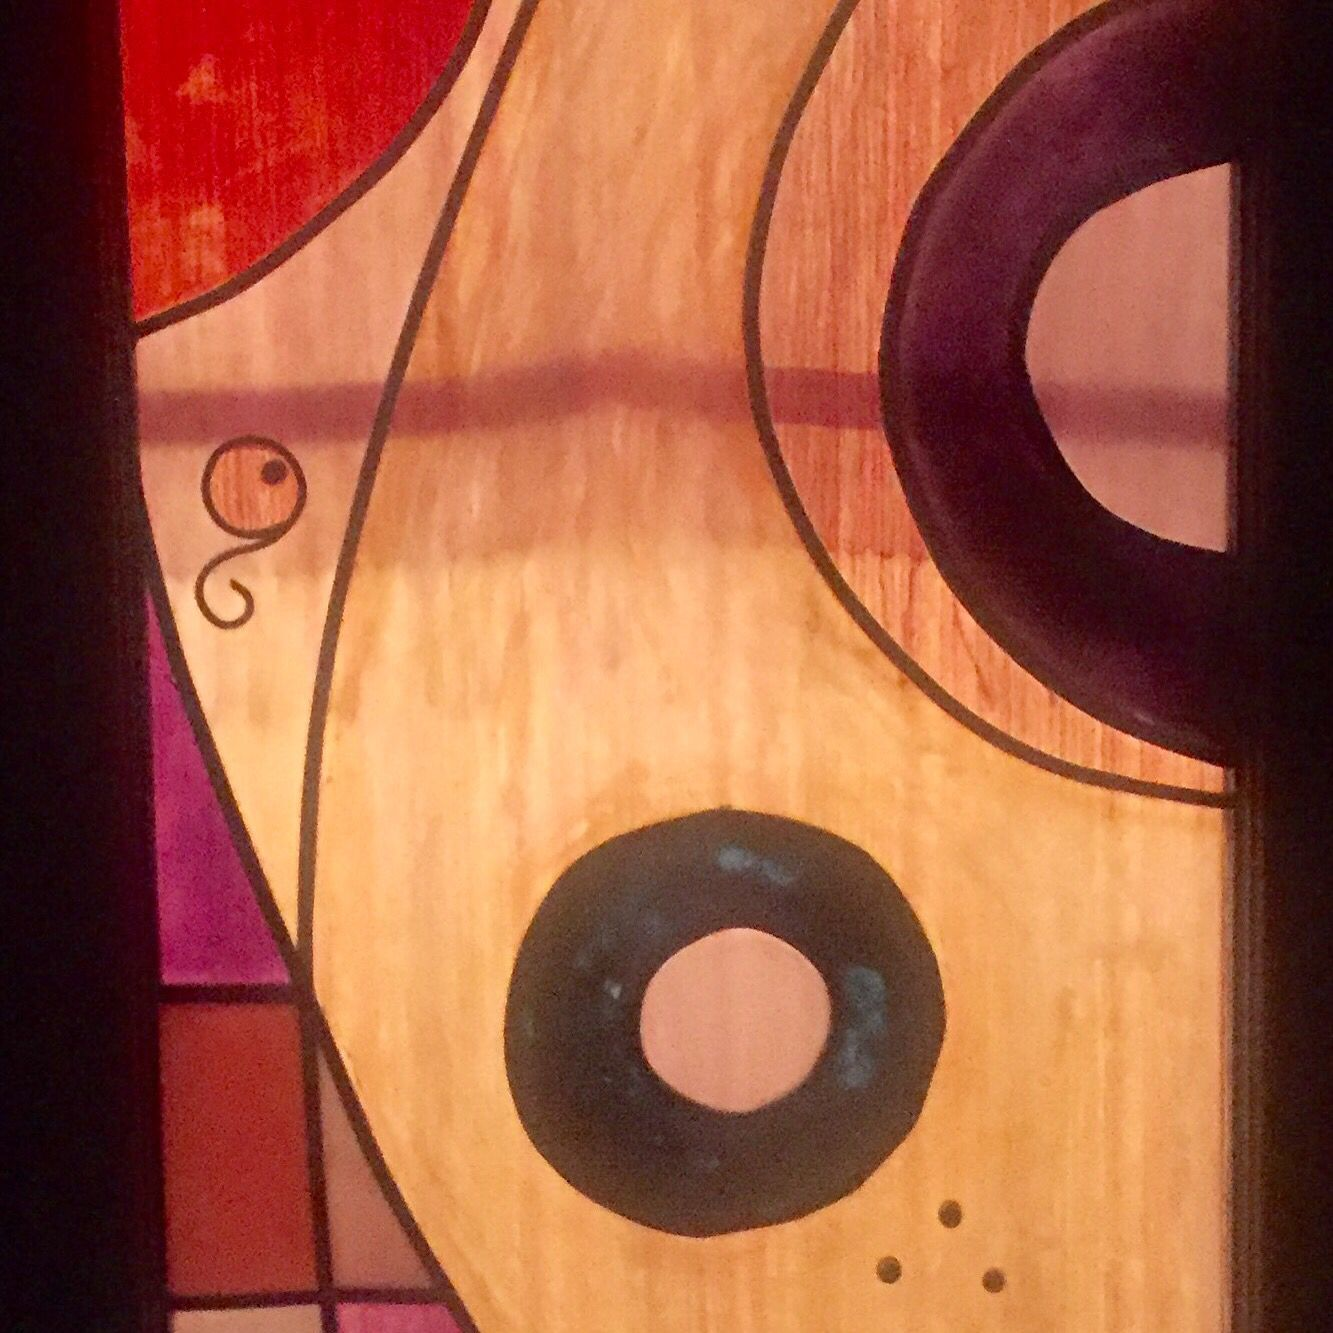 More Glass Painting Done On Door Panels My Art Pinterest